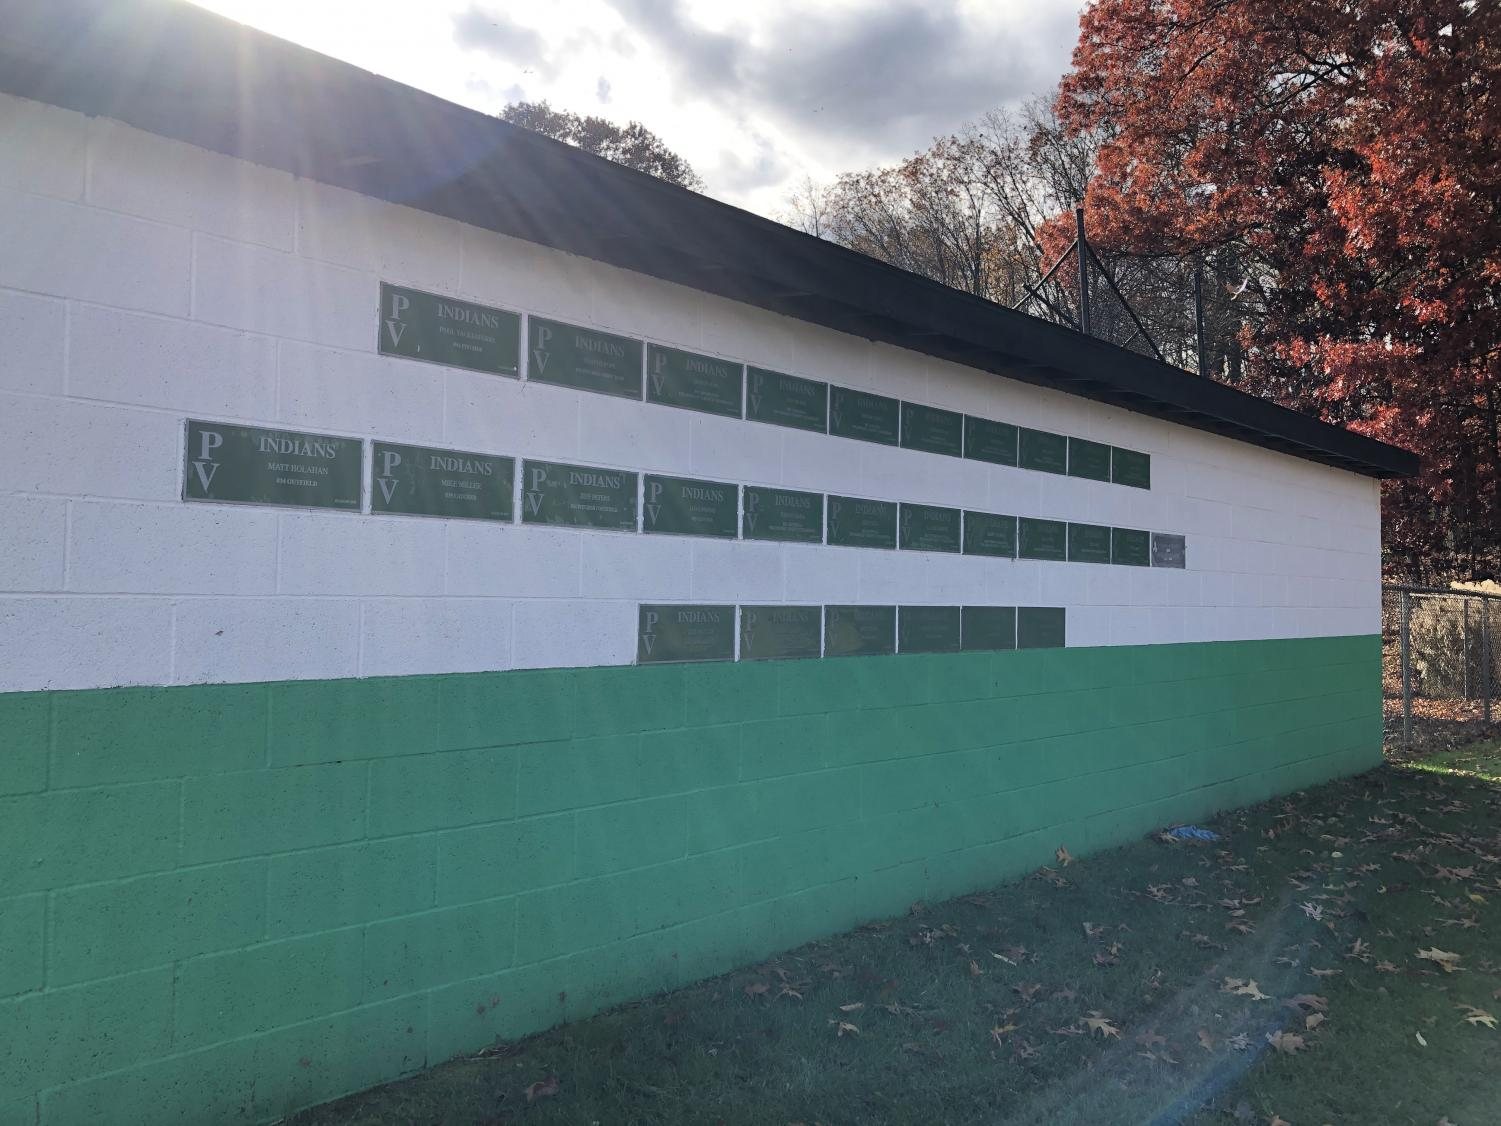 The Smoke Signal broke the news last week that two swastikas were found inside of PV bathrooms. More instances of hate speech were found etched into plaques along the back of PV's third base dugout.